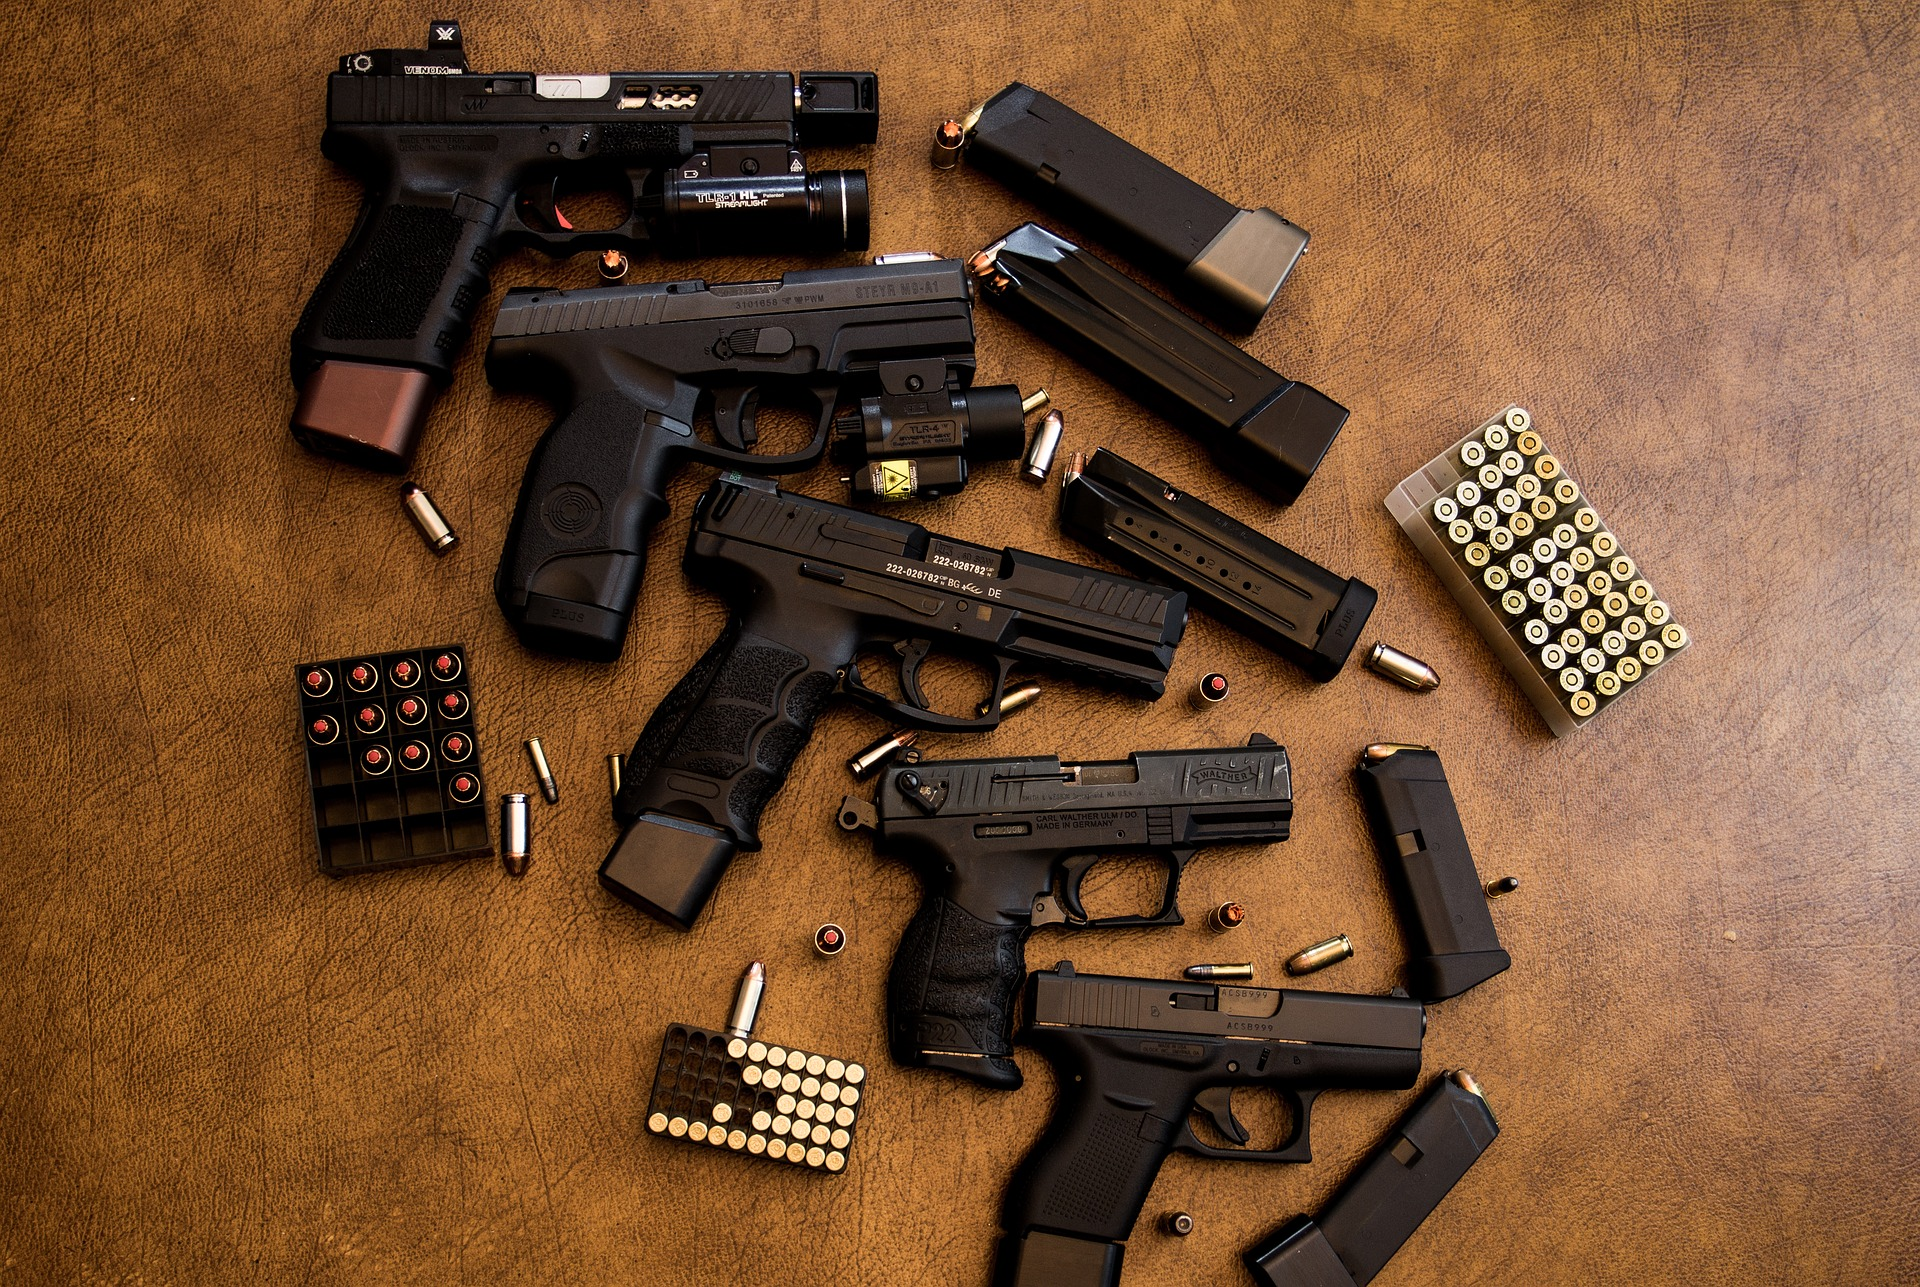 A Review Of The Top 9mm Ammo For Self Defense